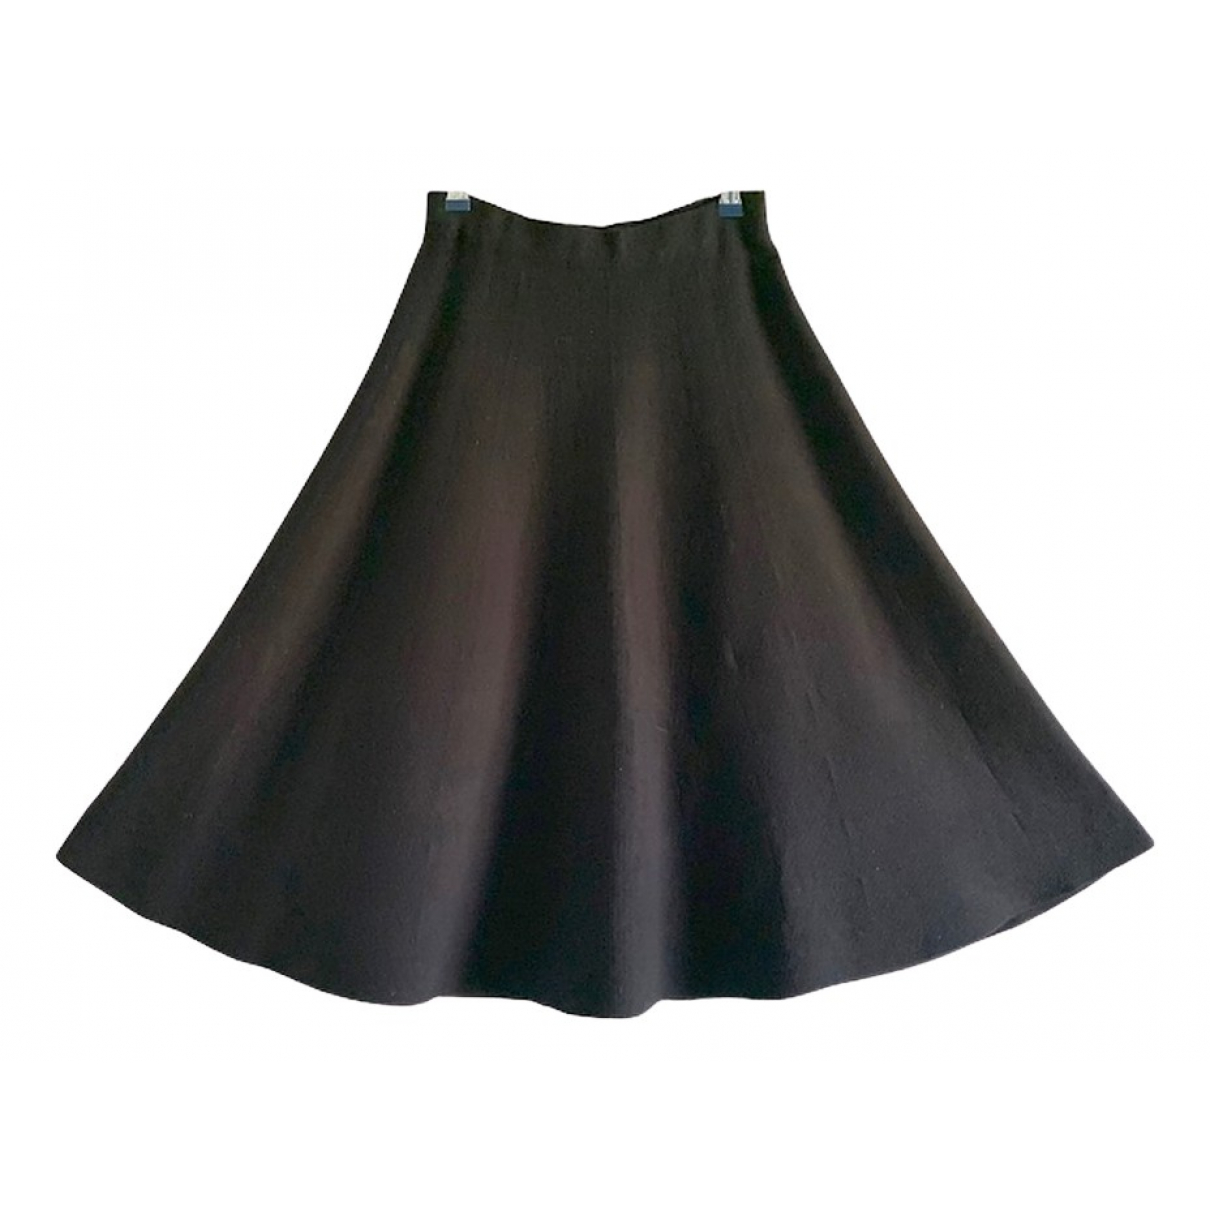 Polo Ralph Lauren \N Black Cotton - elasthane skirt for Women S International